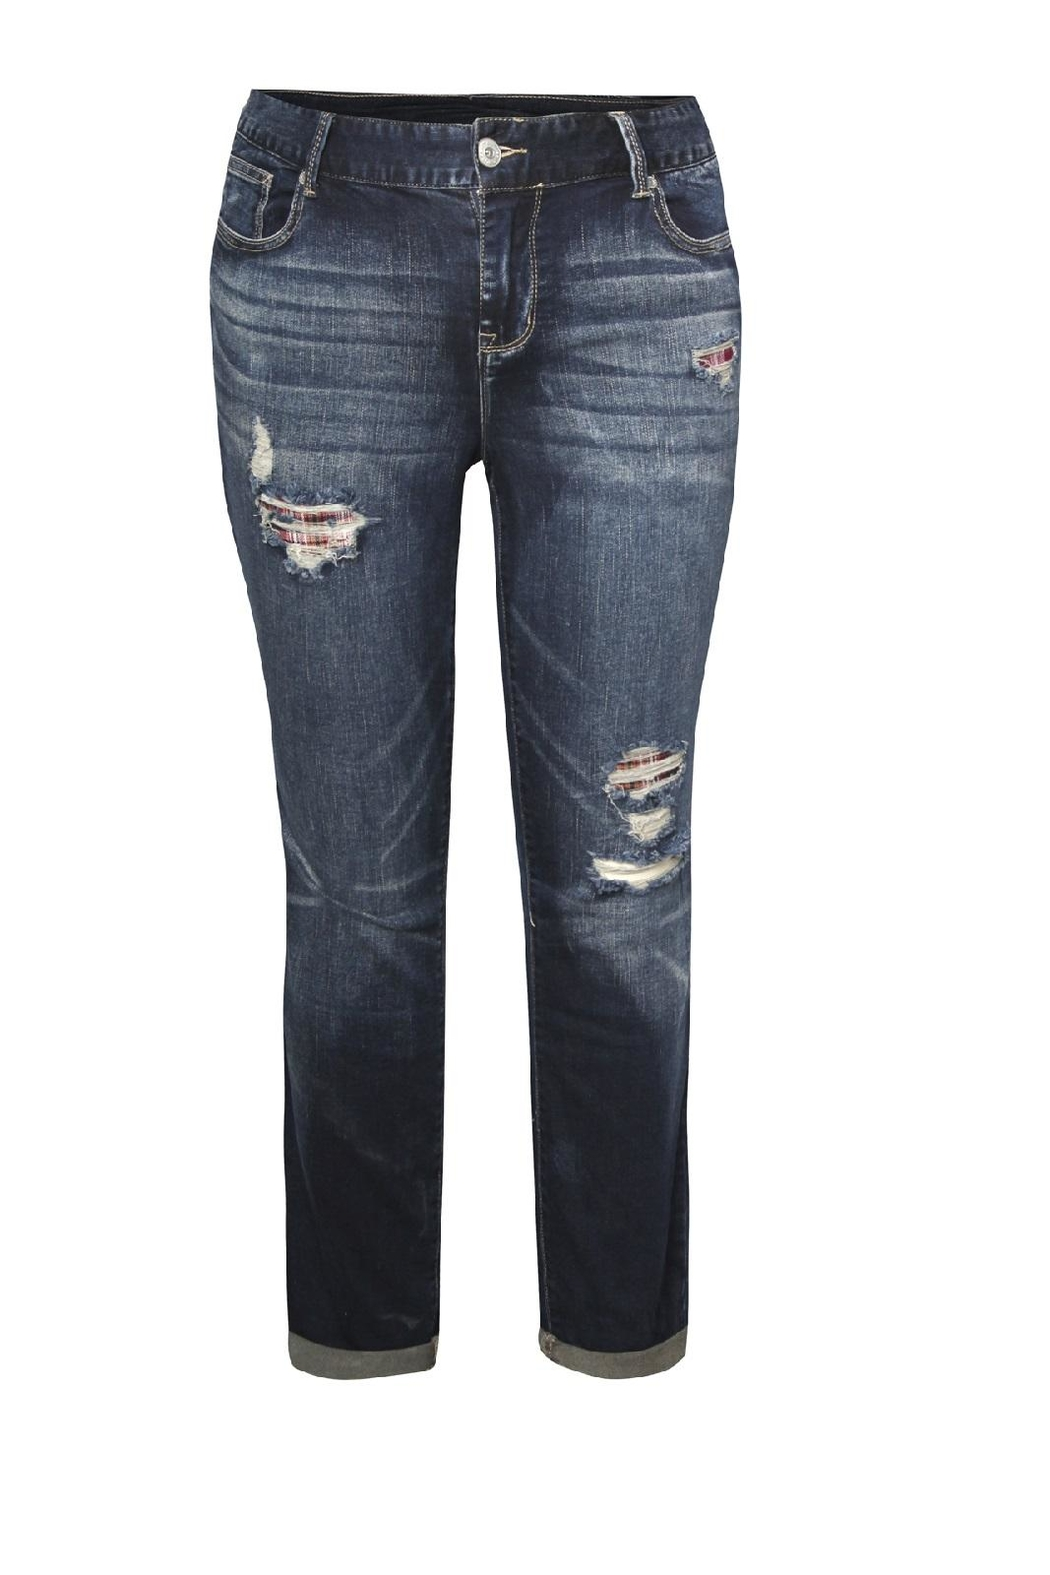 Dex/Black Tape Distressted Cuffed Jeans - Main Image